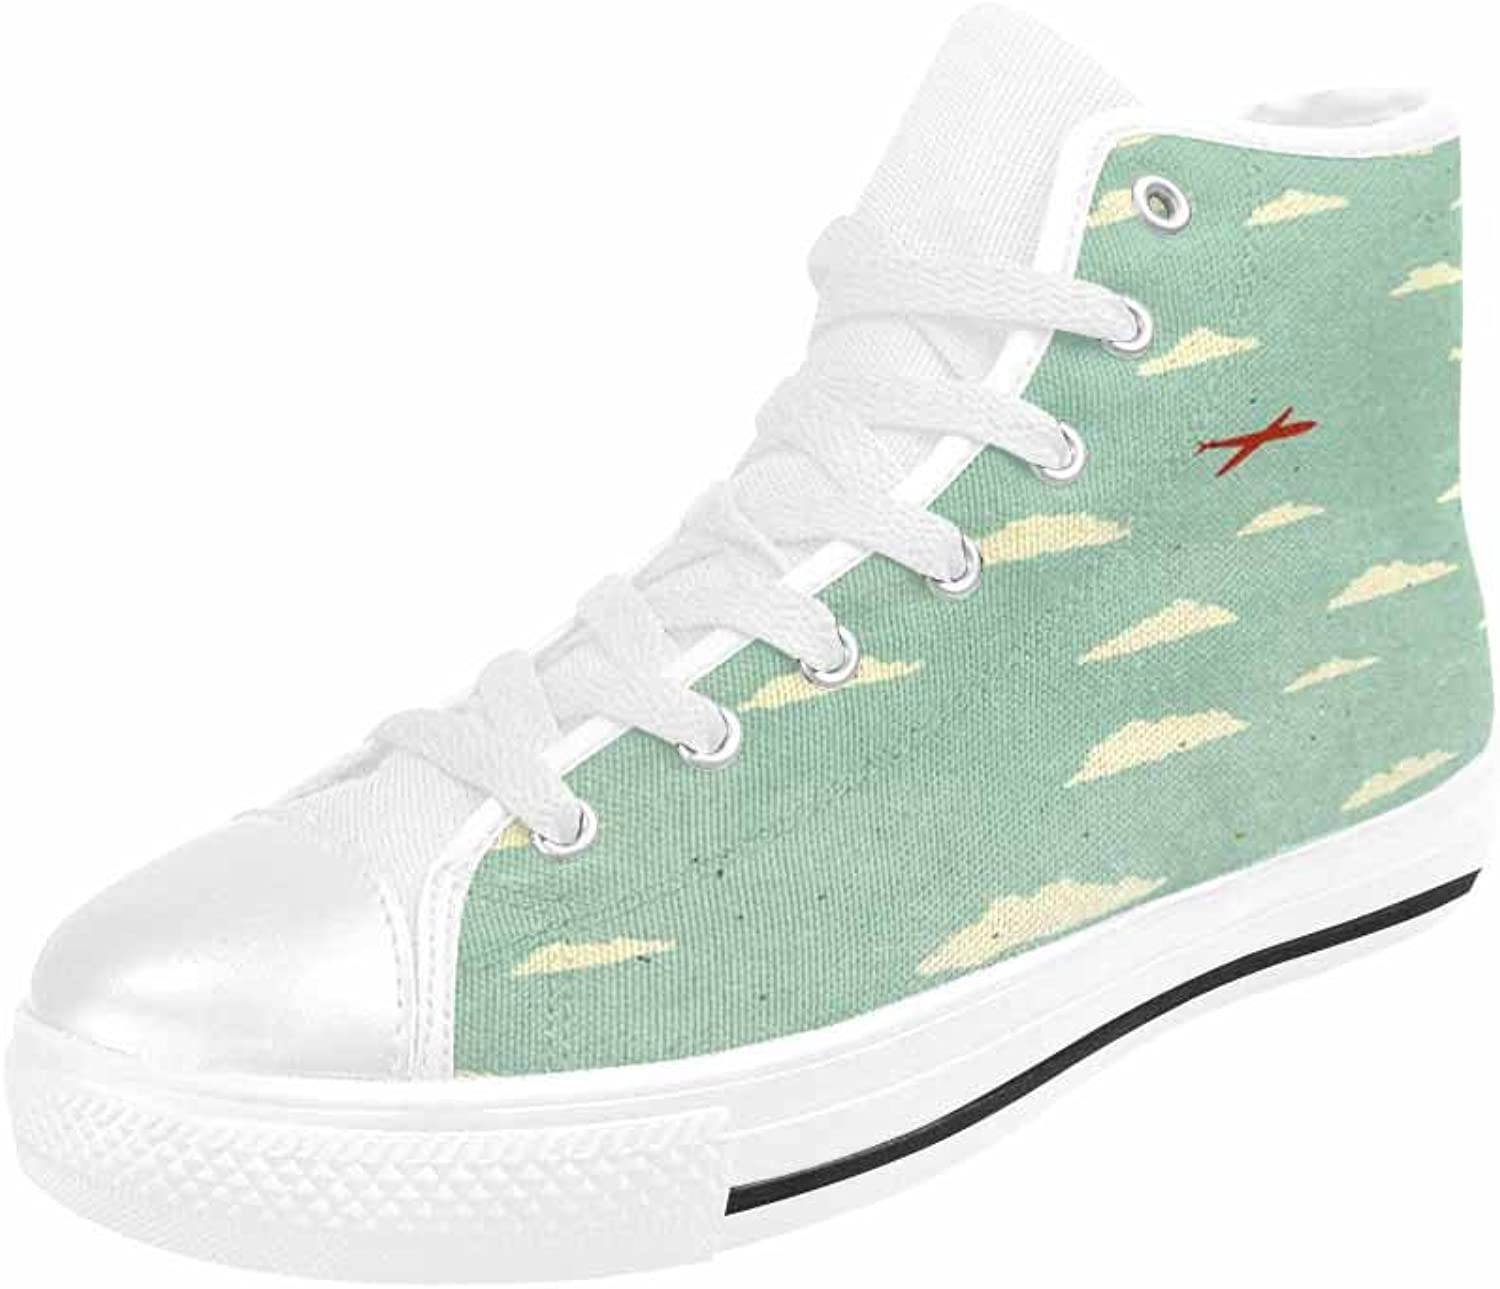 MingDe Sports Women's High Top Rubber Sole Casual Canvas Sneaker shoes